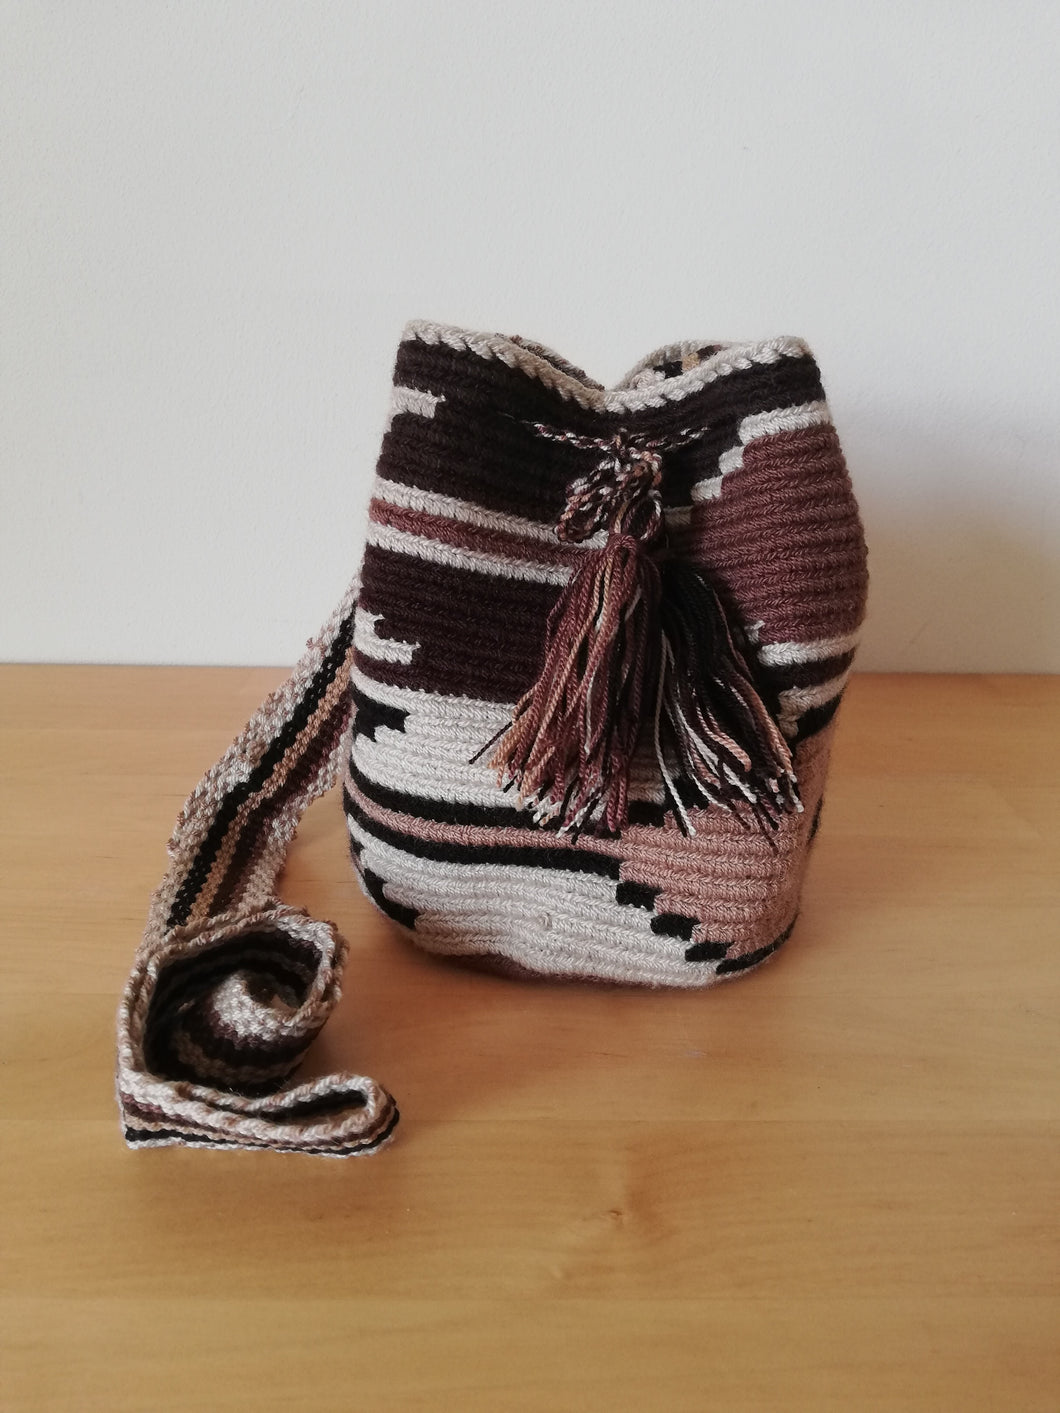 Authentic Handmade Mochilas Wayuu Bags - Small 9